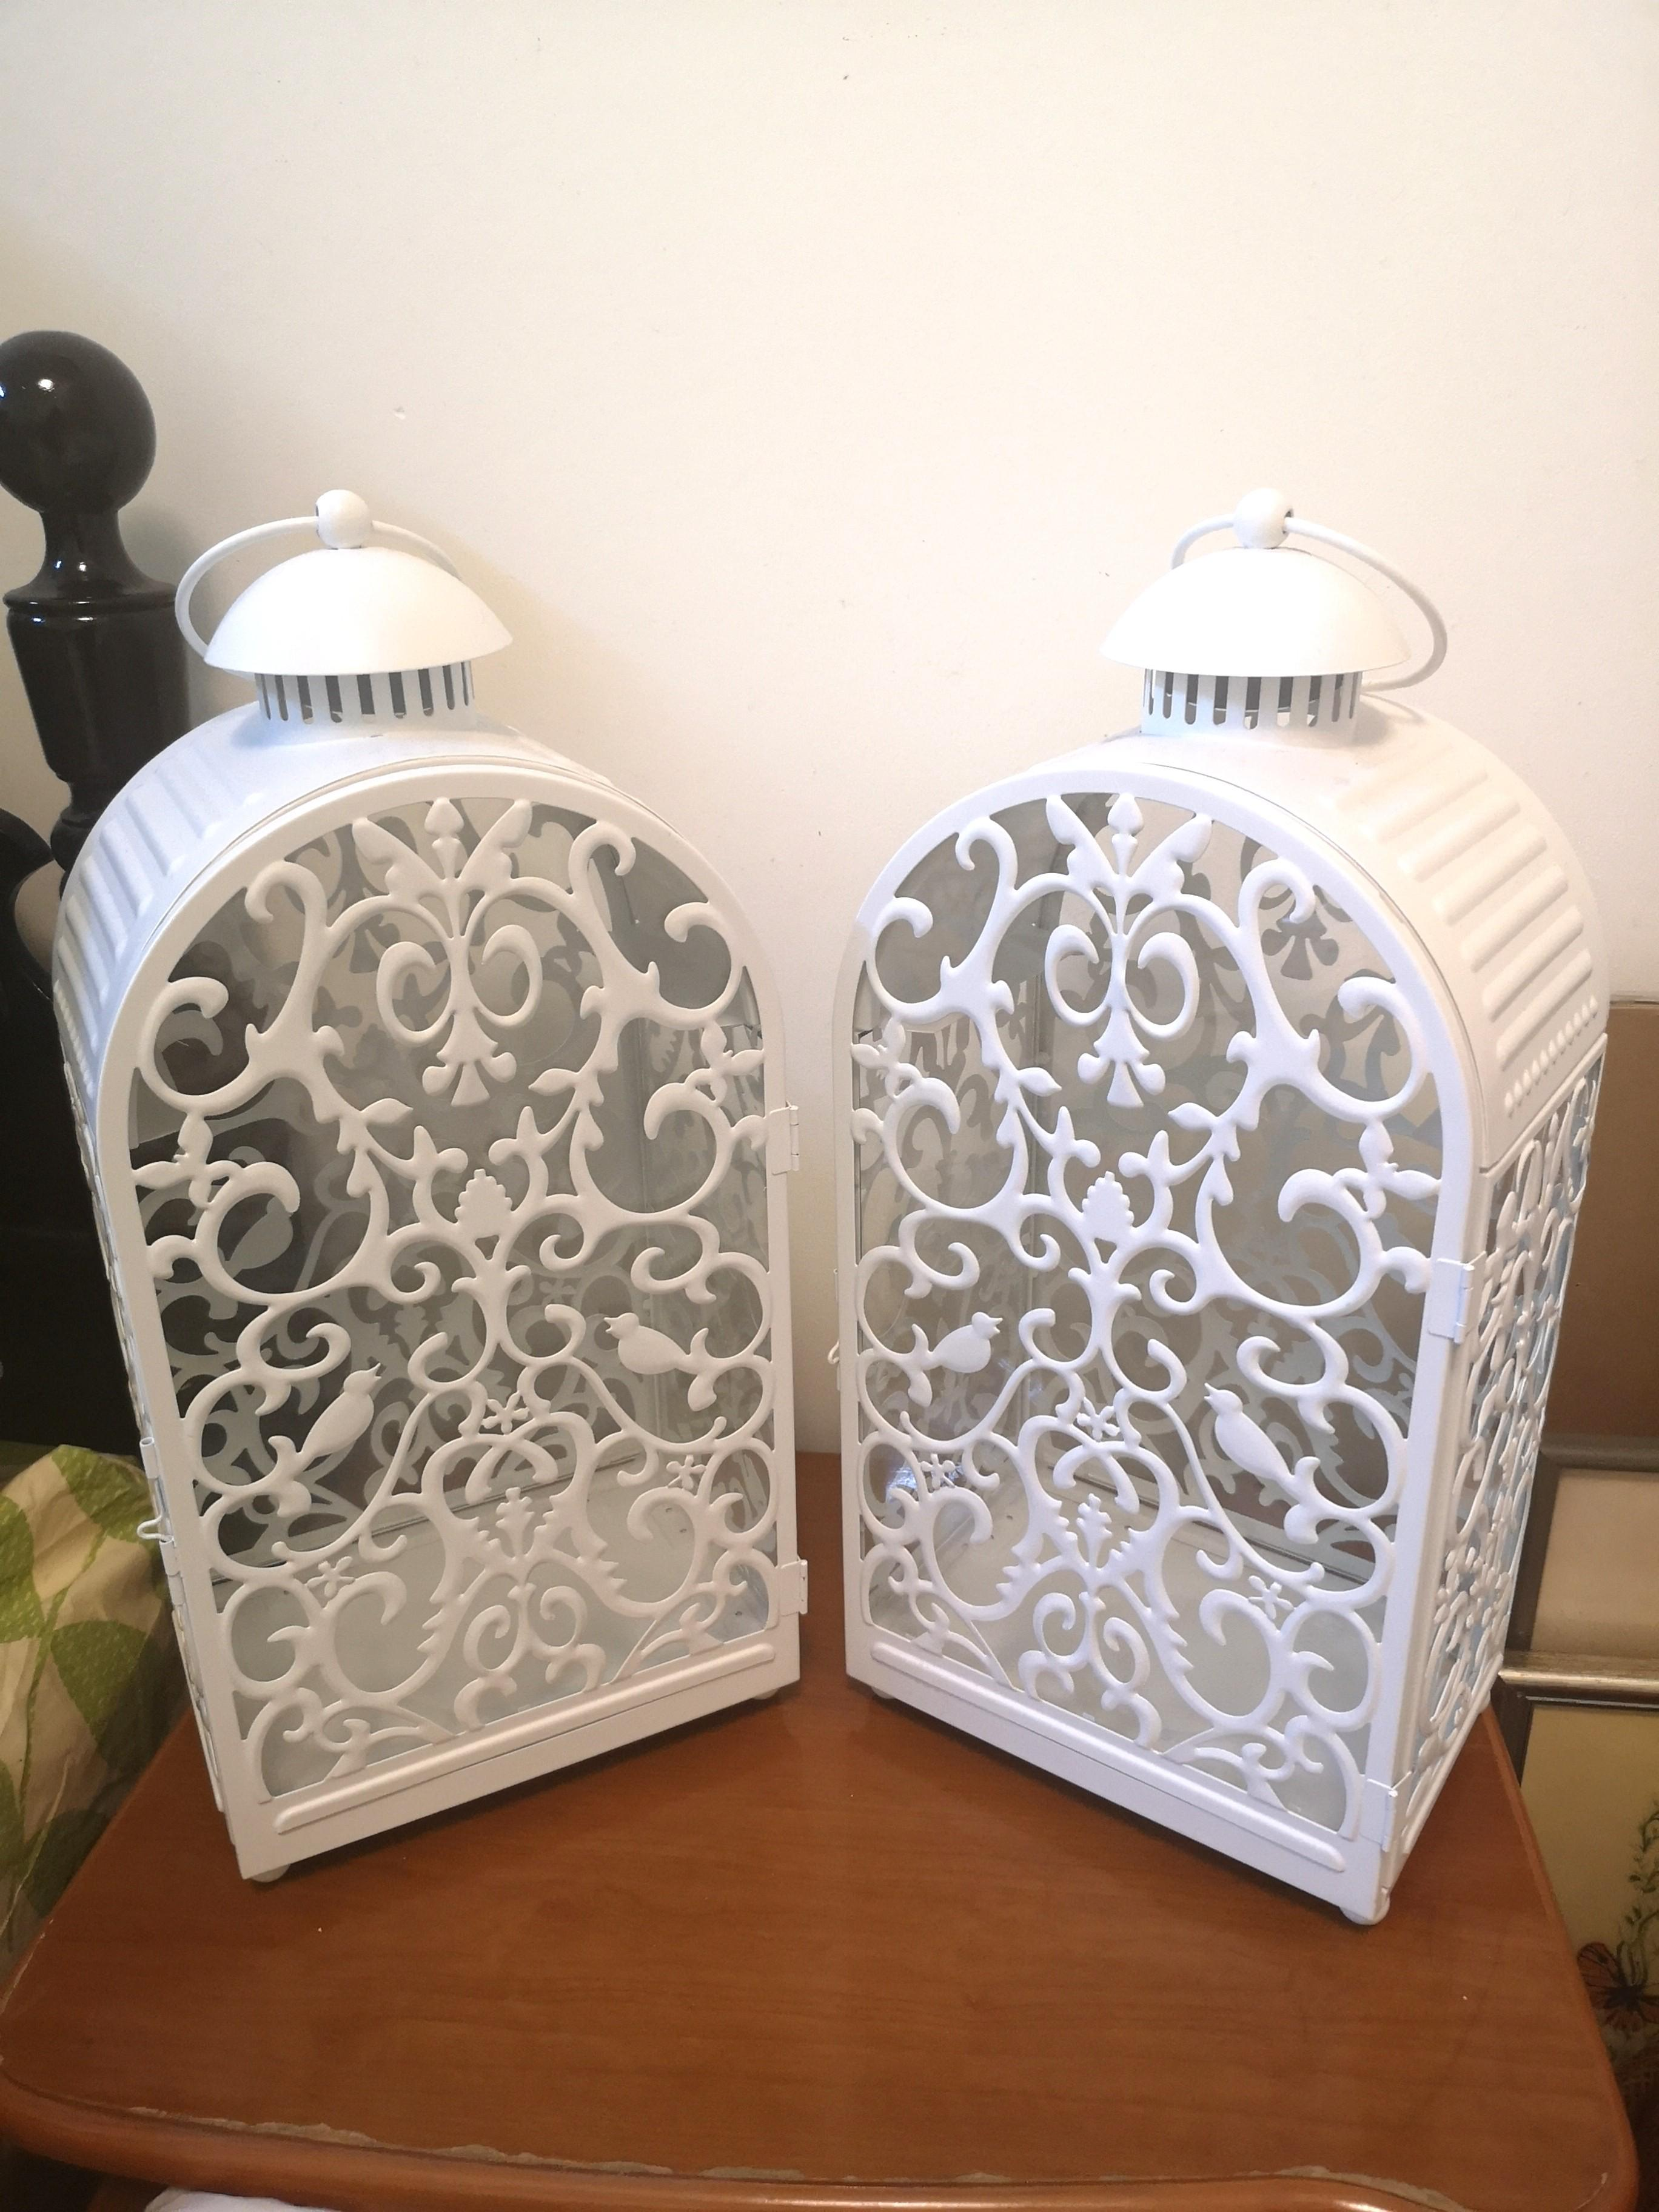 Big White Candle Holders Decor X 2 Home Furniture Home Decor On Carousell